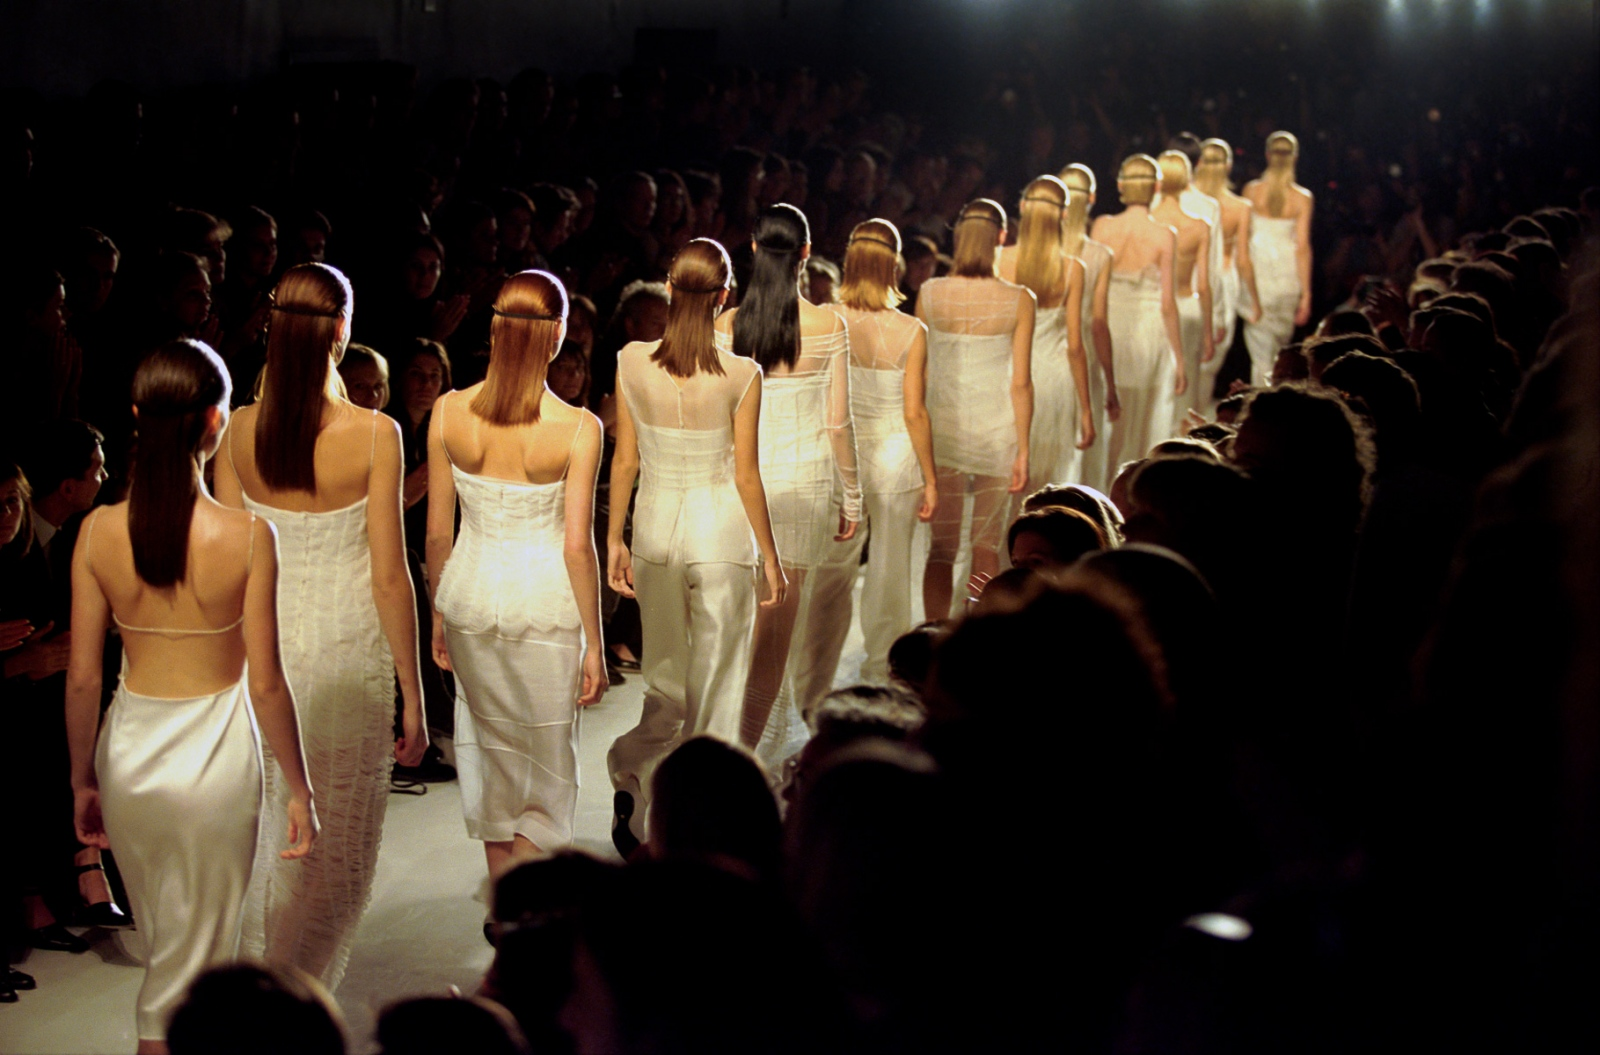 Designers often strive for homogeneity in their models to make a dramatic point. Donna Karan, fall '97.